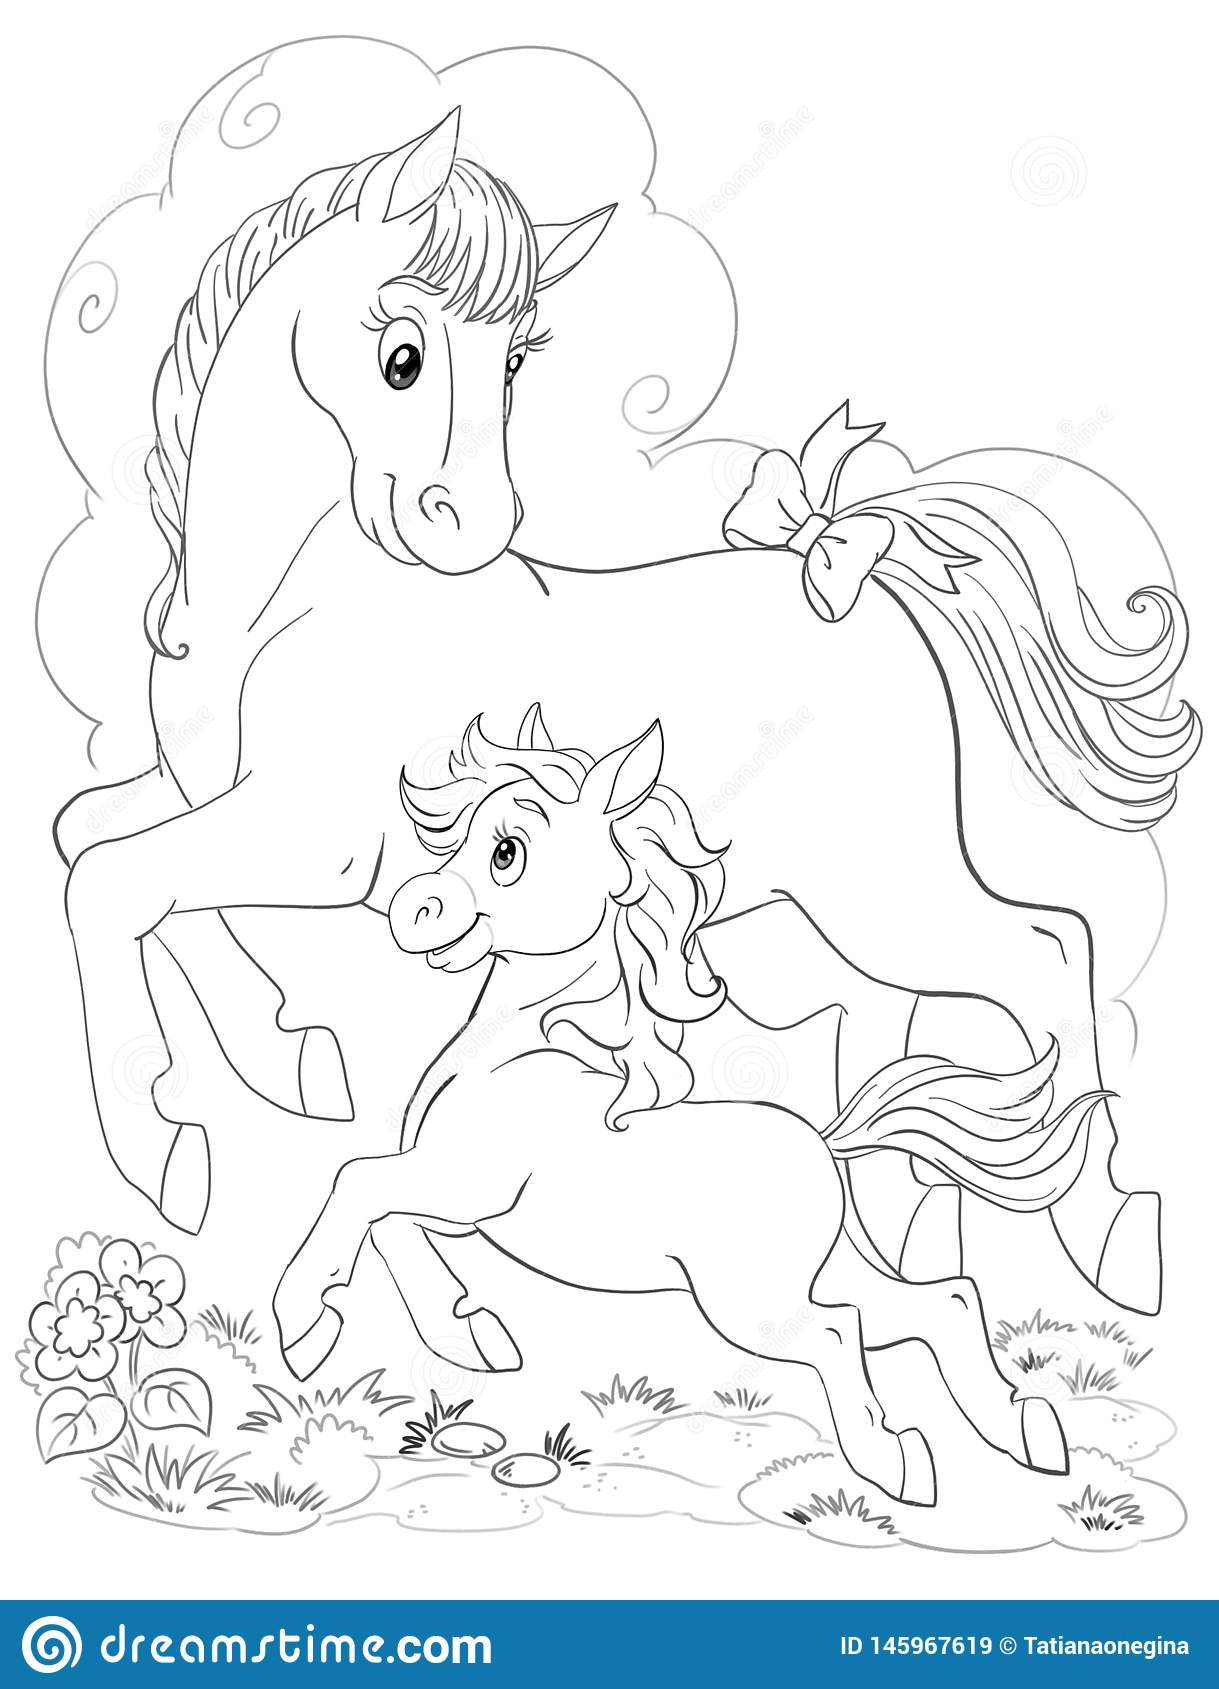 Horse Adult Coloring Pages Images, Stock Photos & Vectors ... | 1689x1219